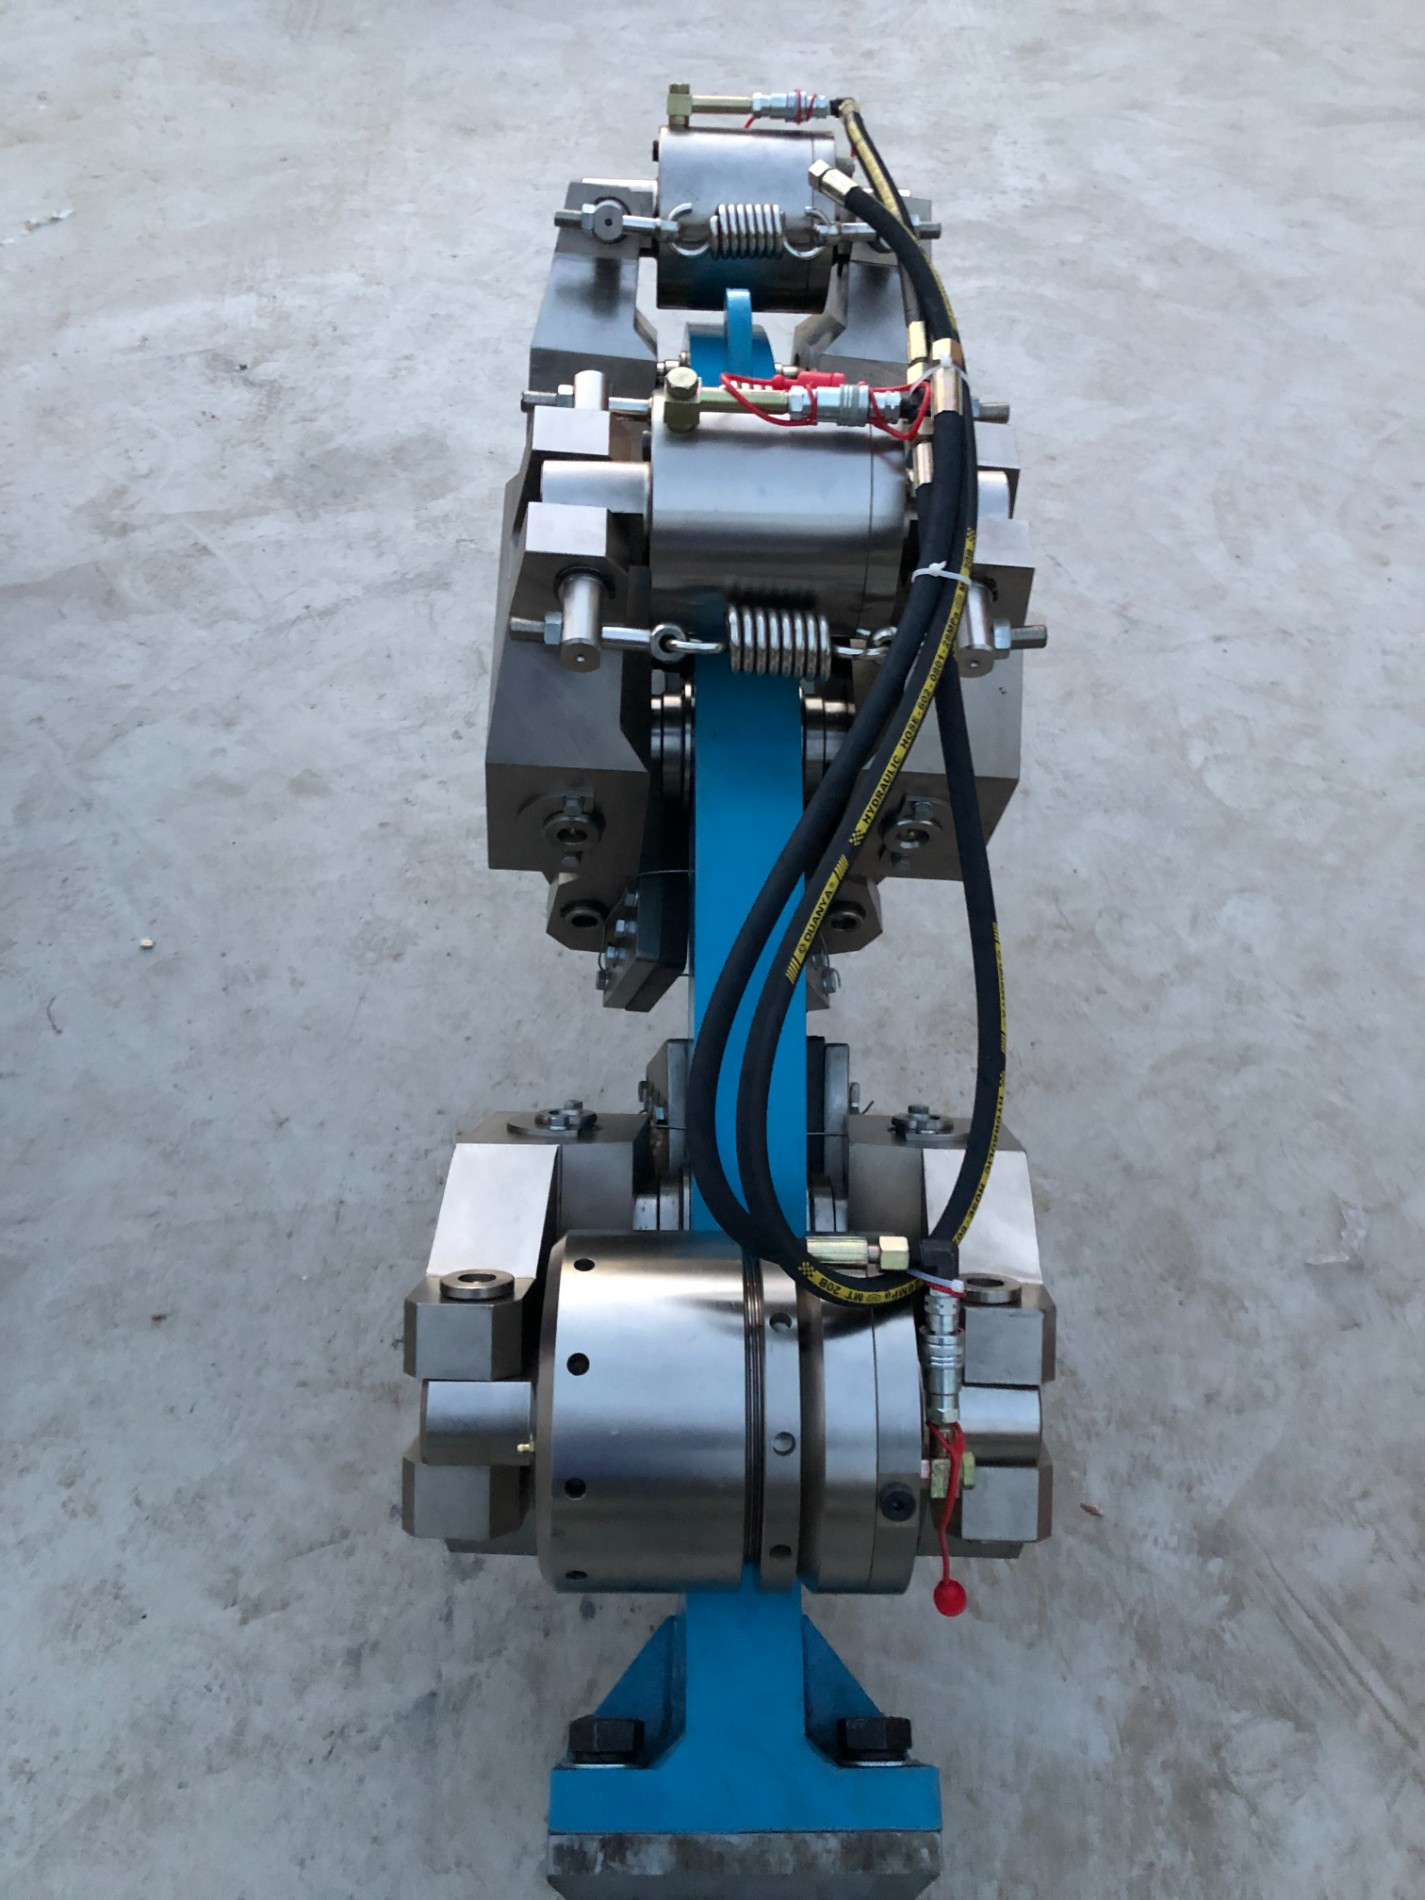 A customer in Shaanxi Province ordered a 50-drill rig disc brake modification project